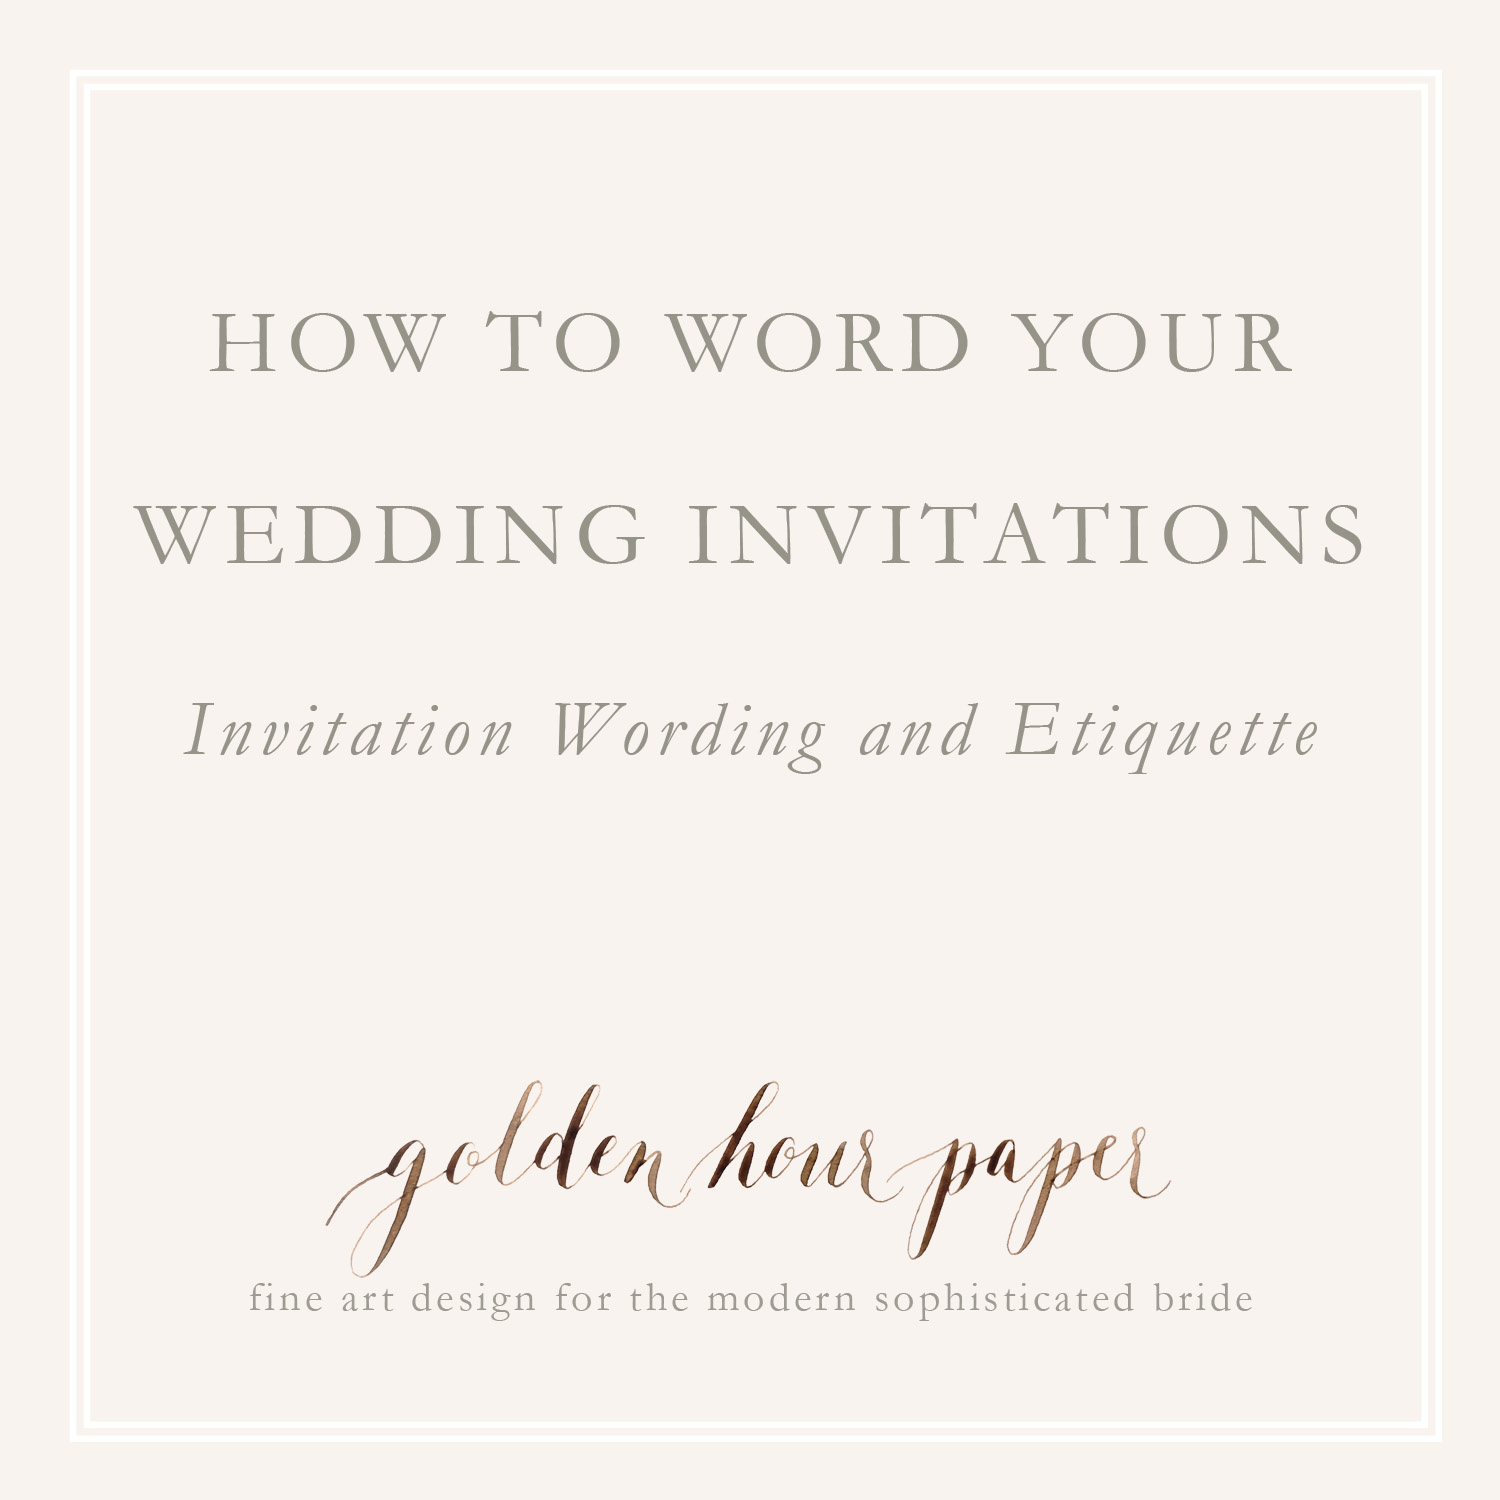 How To Word Your Wedding Invitations Invitation Wording